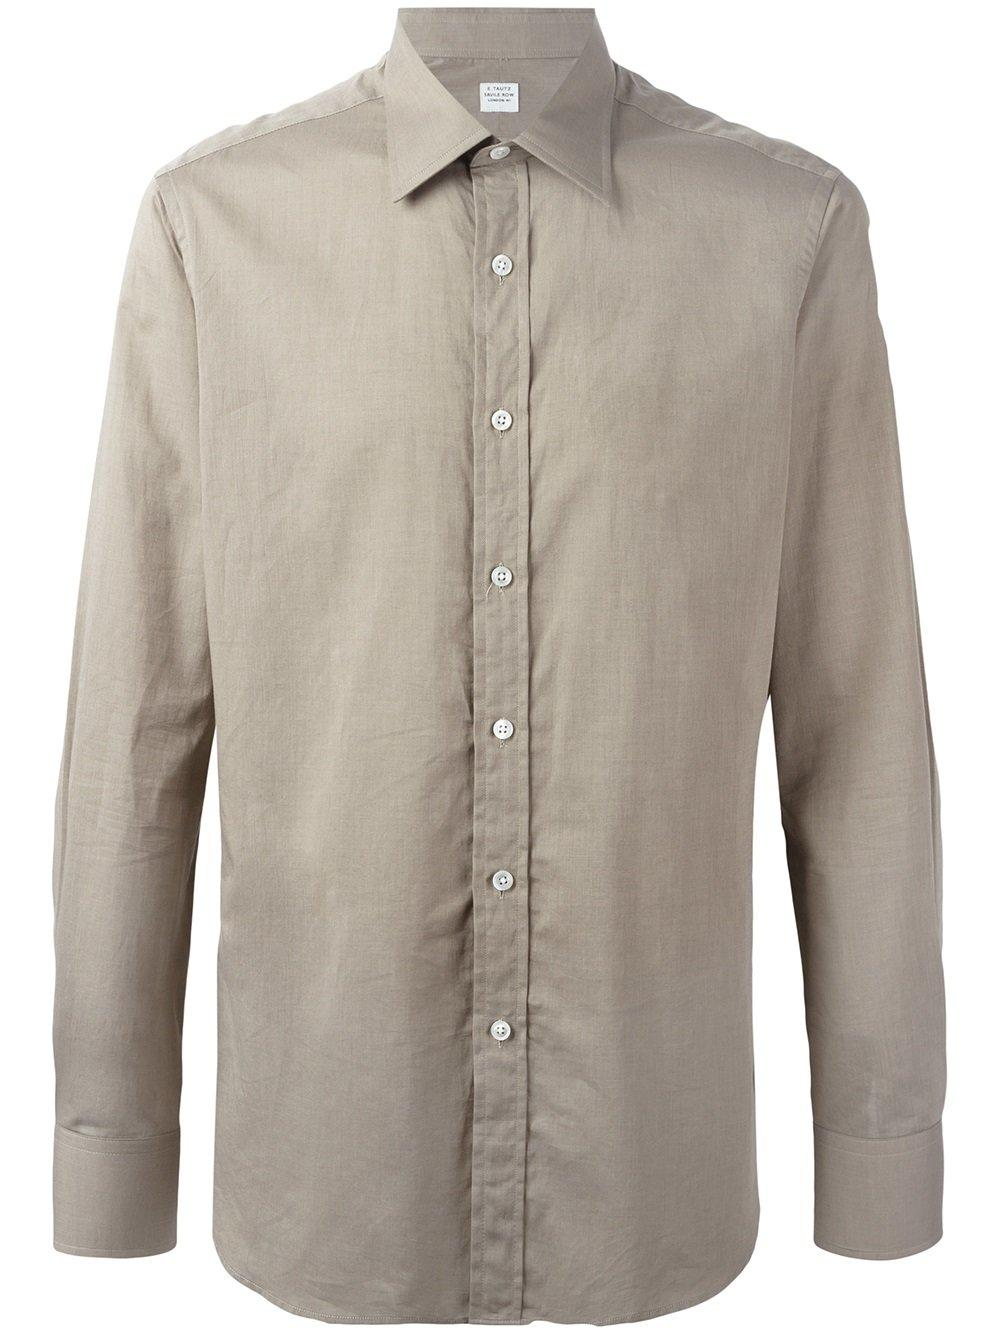 E tautz classic button down shirt for men lyst for Preppy button down shirts